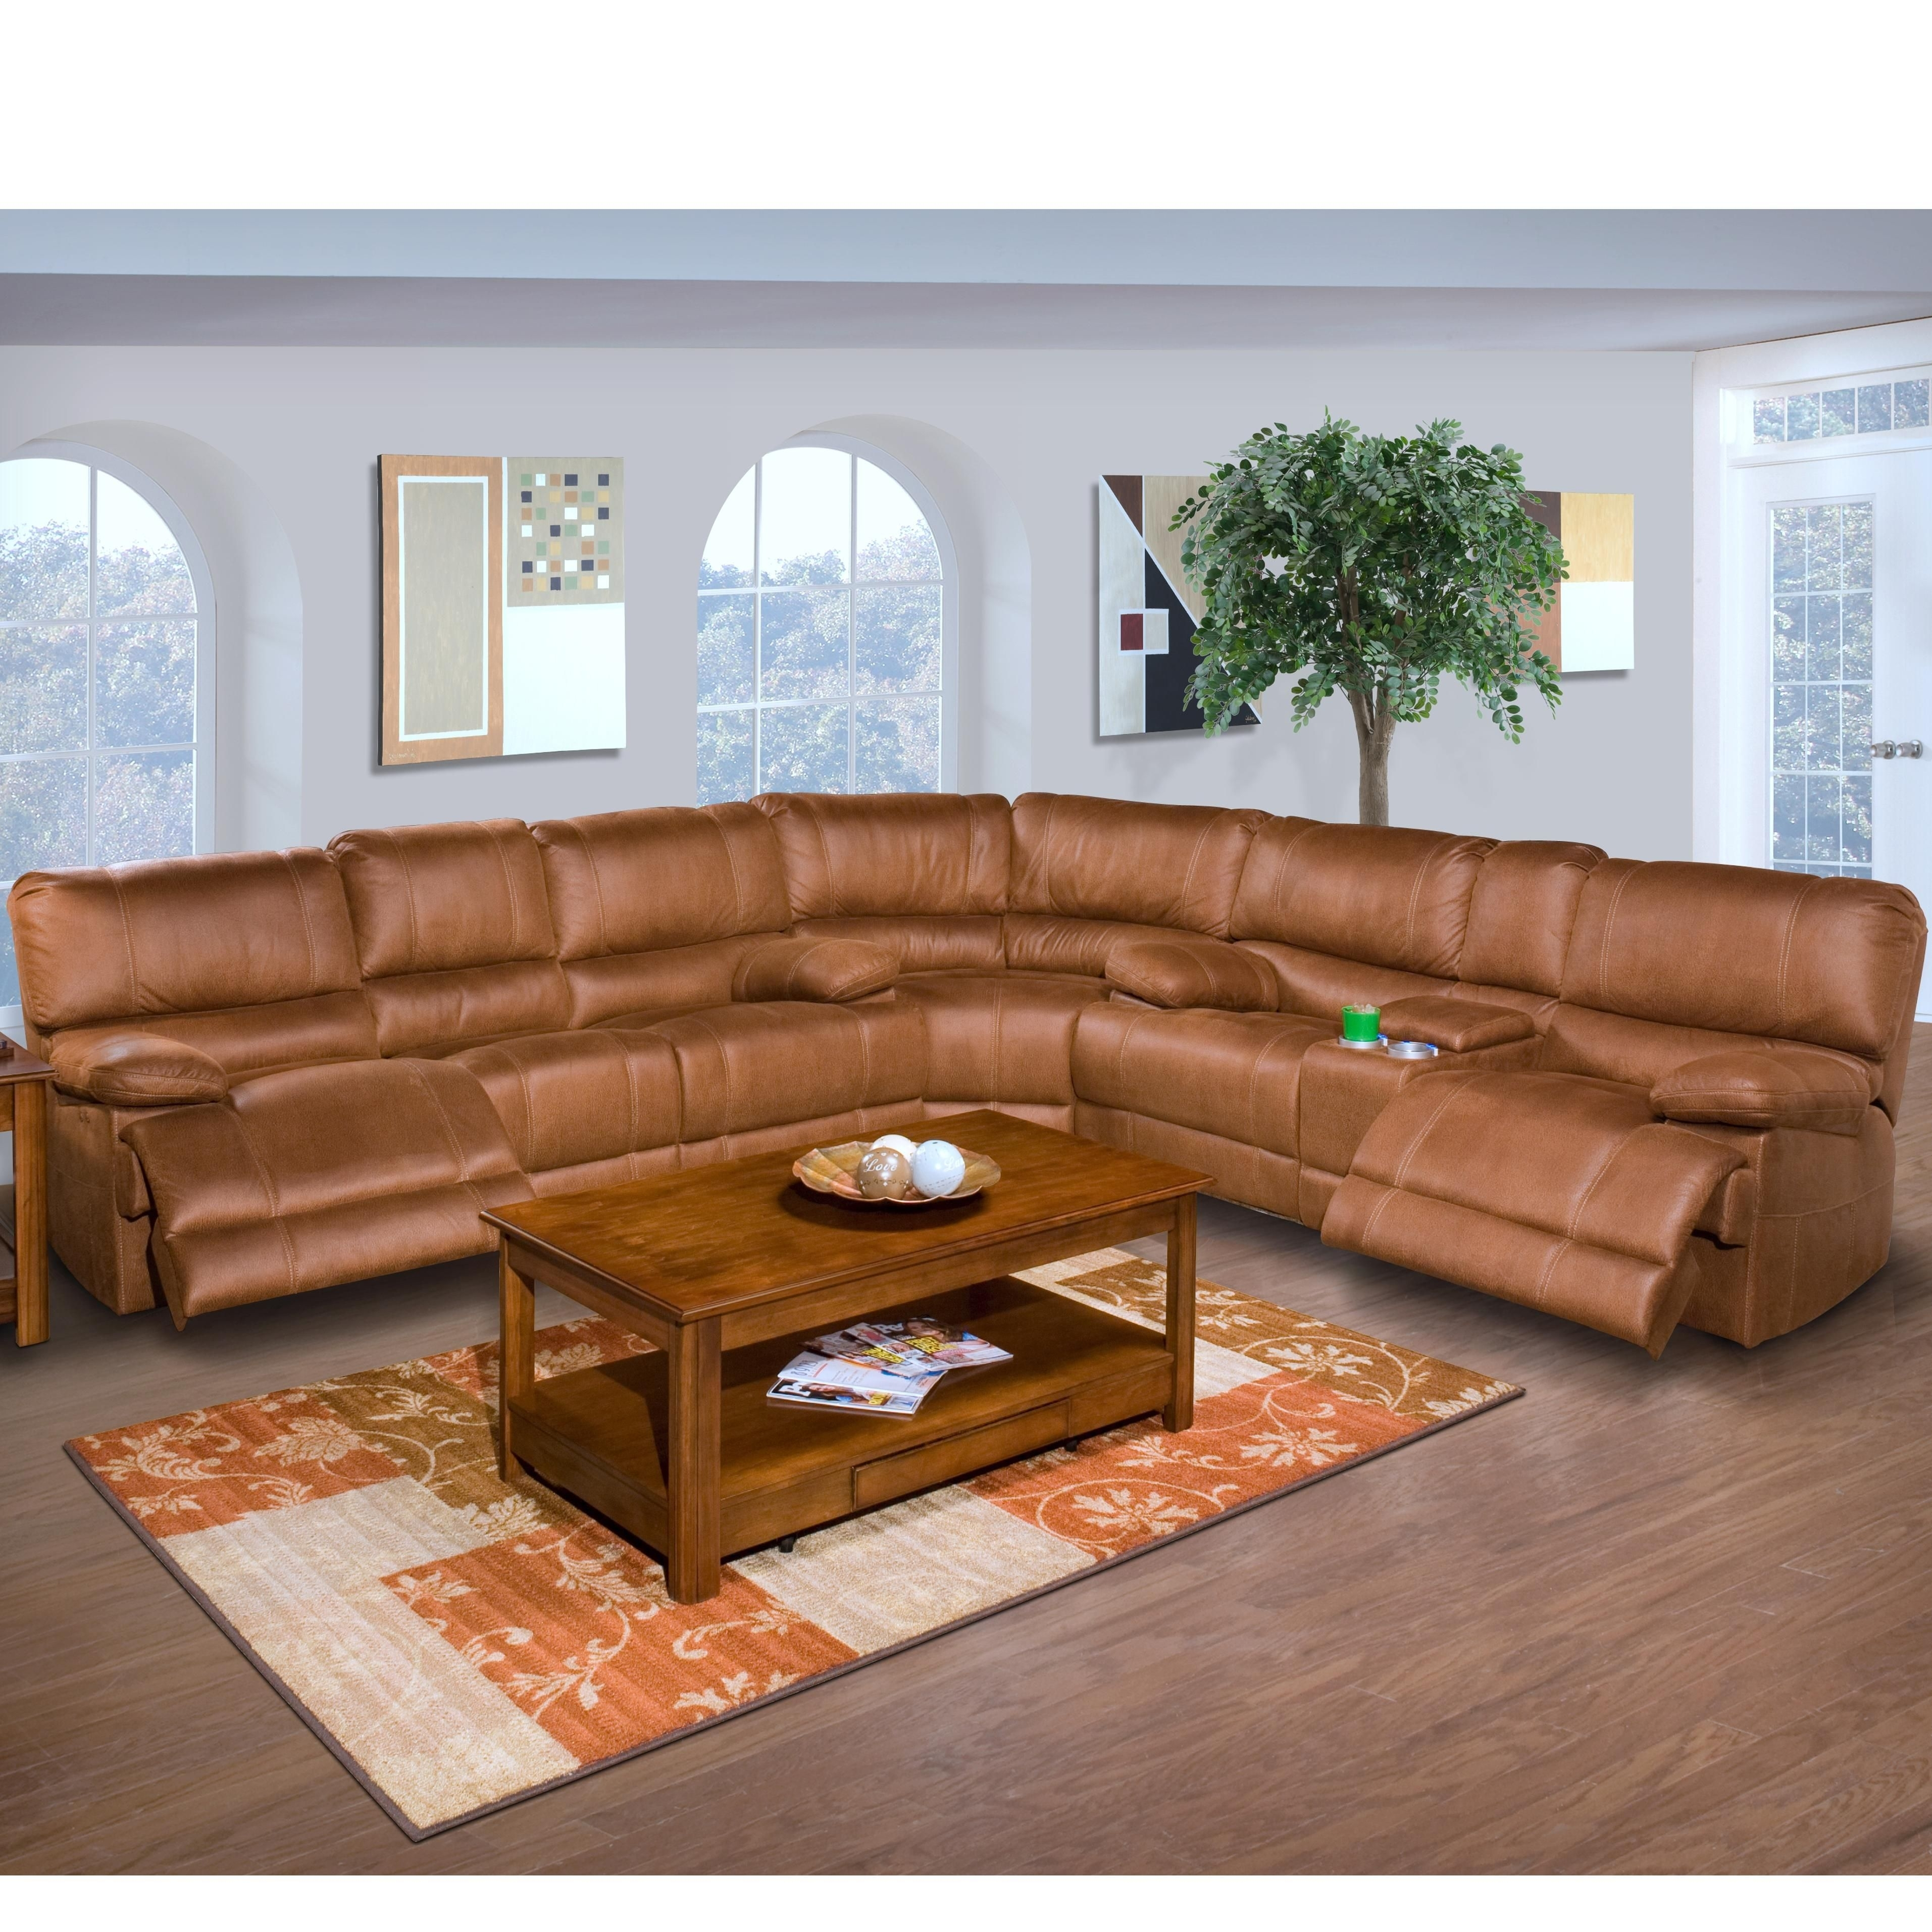 Pinkaryn Albright On Couches | Pinterest Throughout Denali Charcoal Grey 6 Piece Reclining Sectionals With 2 Power Headrests (Image 21 of 25)